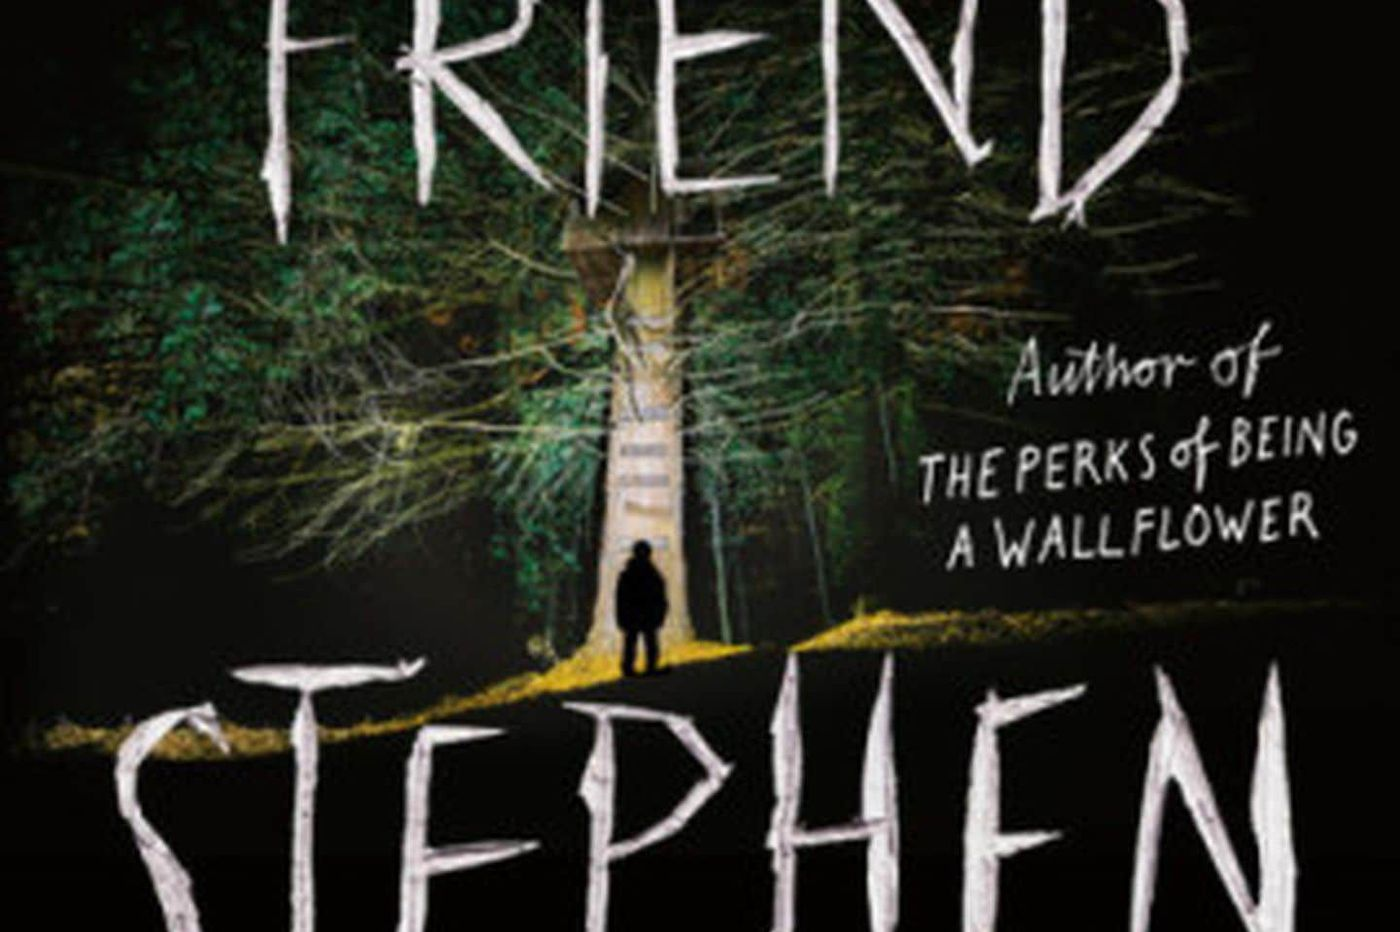 20 years after 'The Perks of Being a Wallflower,' Stephen Chbosky delivers a thrilling surprise | Book review